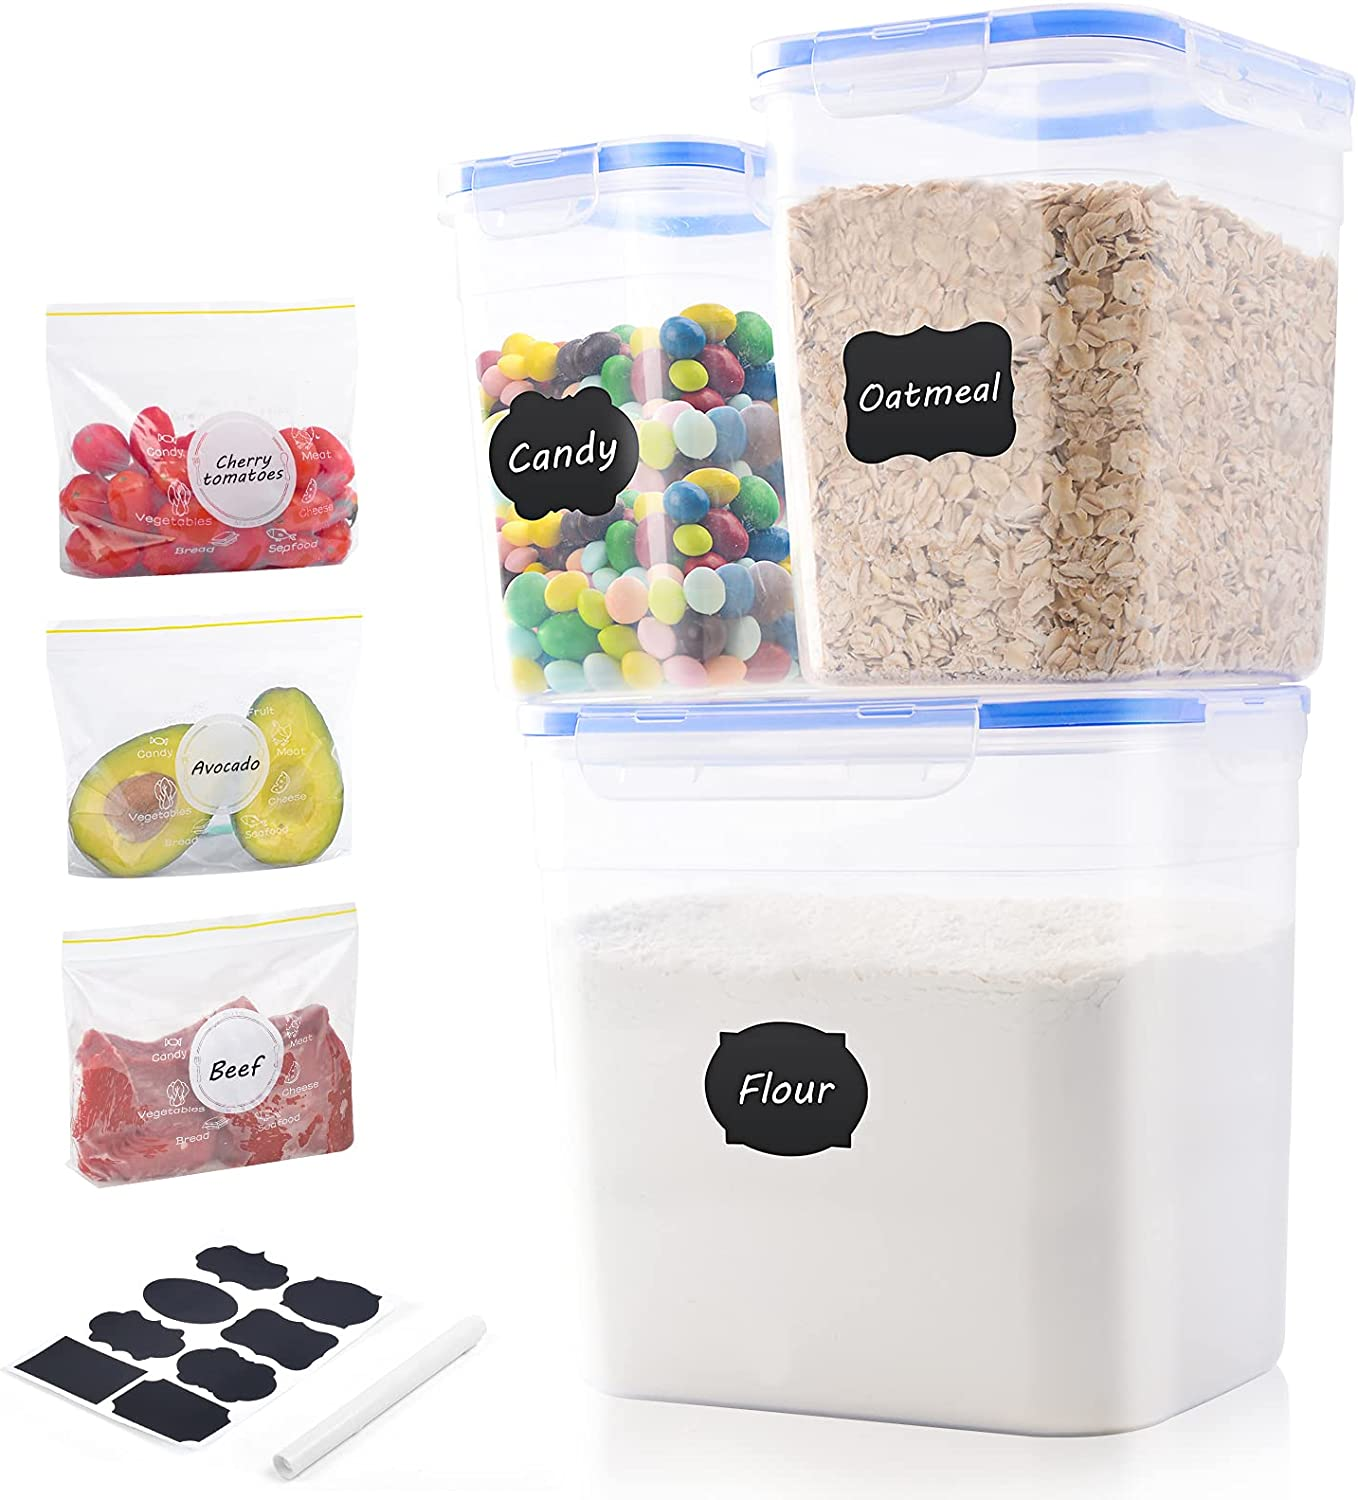 Food New products, world's highest quality popular! Storage Containers Sales for sale Set 3pcs containers 3Pack with cereal Re